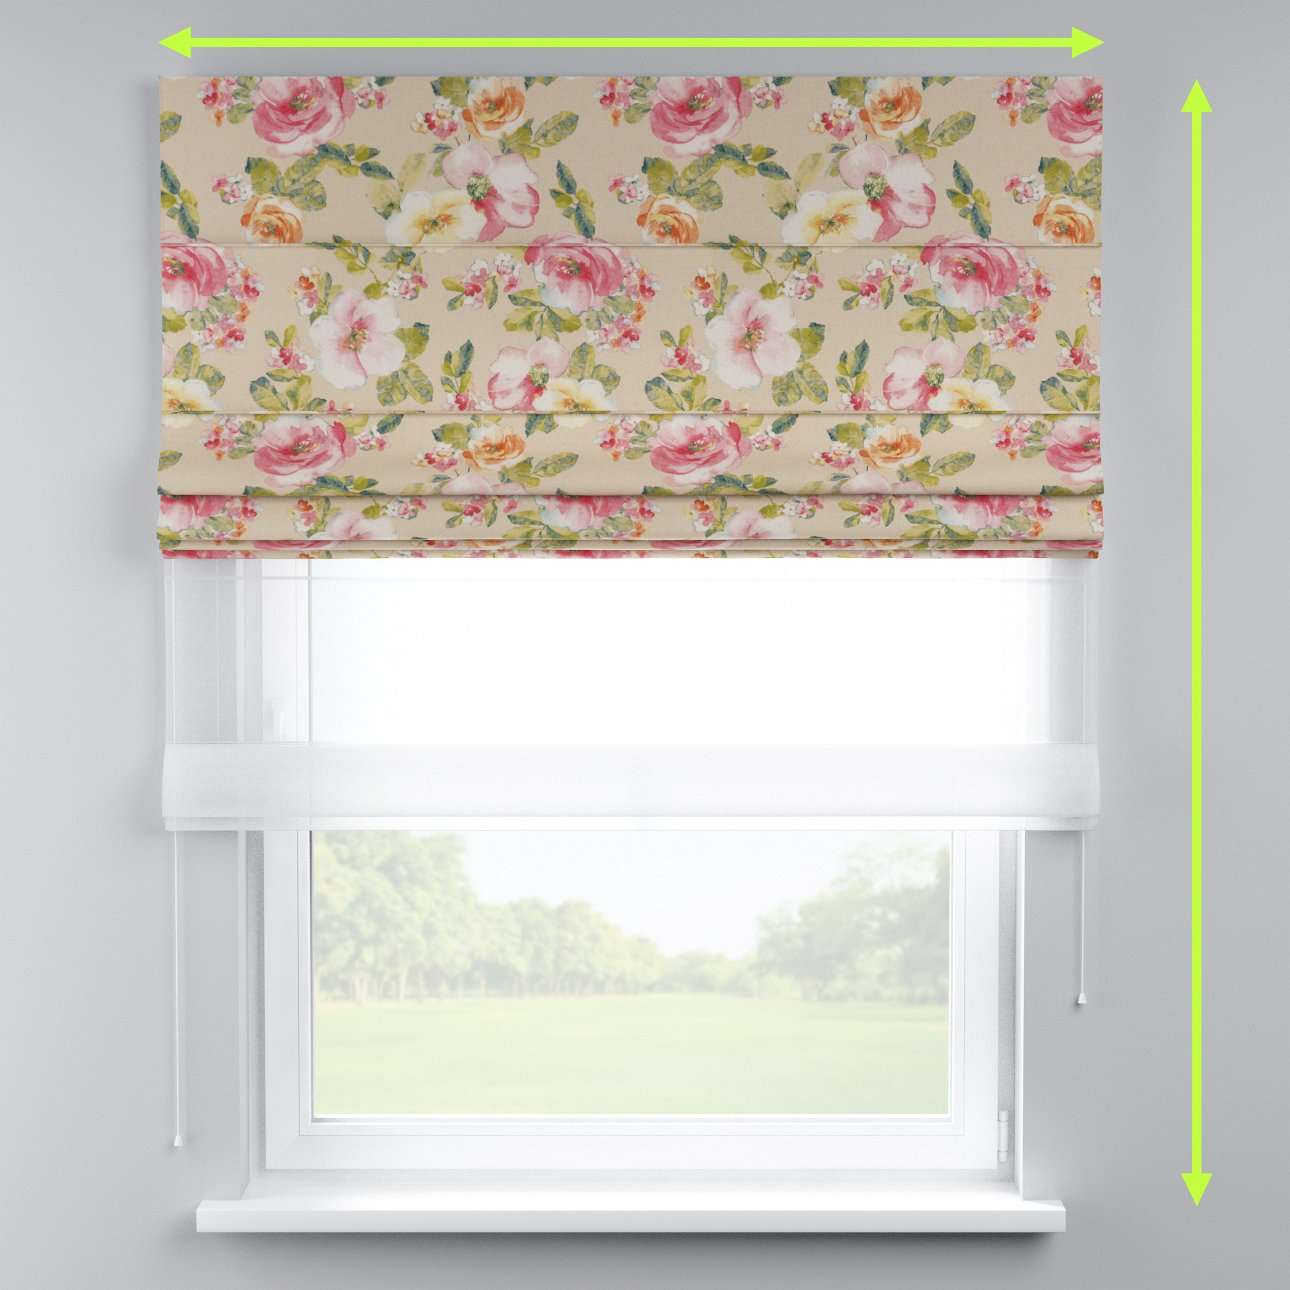 Voile and fabric roman blind (DUO II) in collection Londres, fabric: 140-43